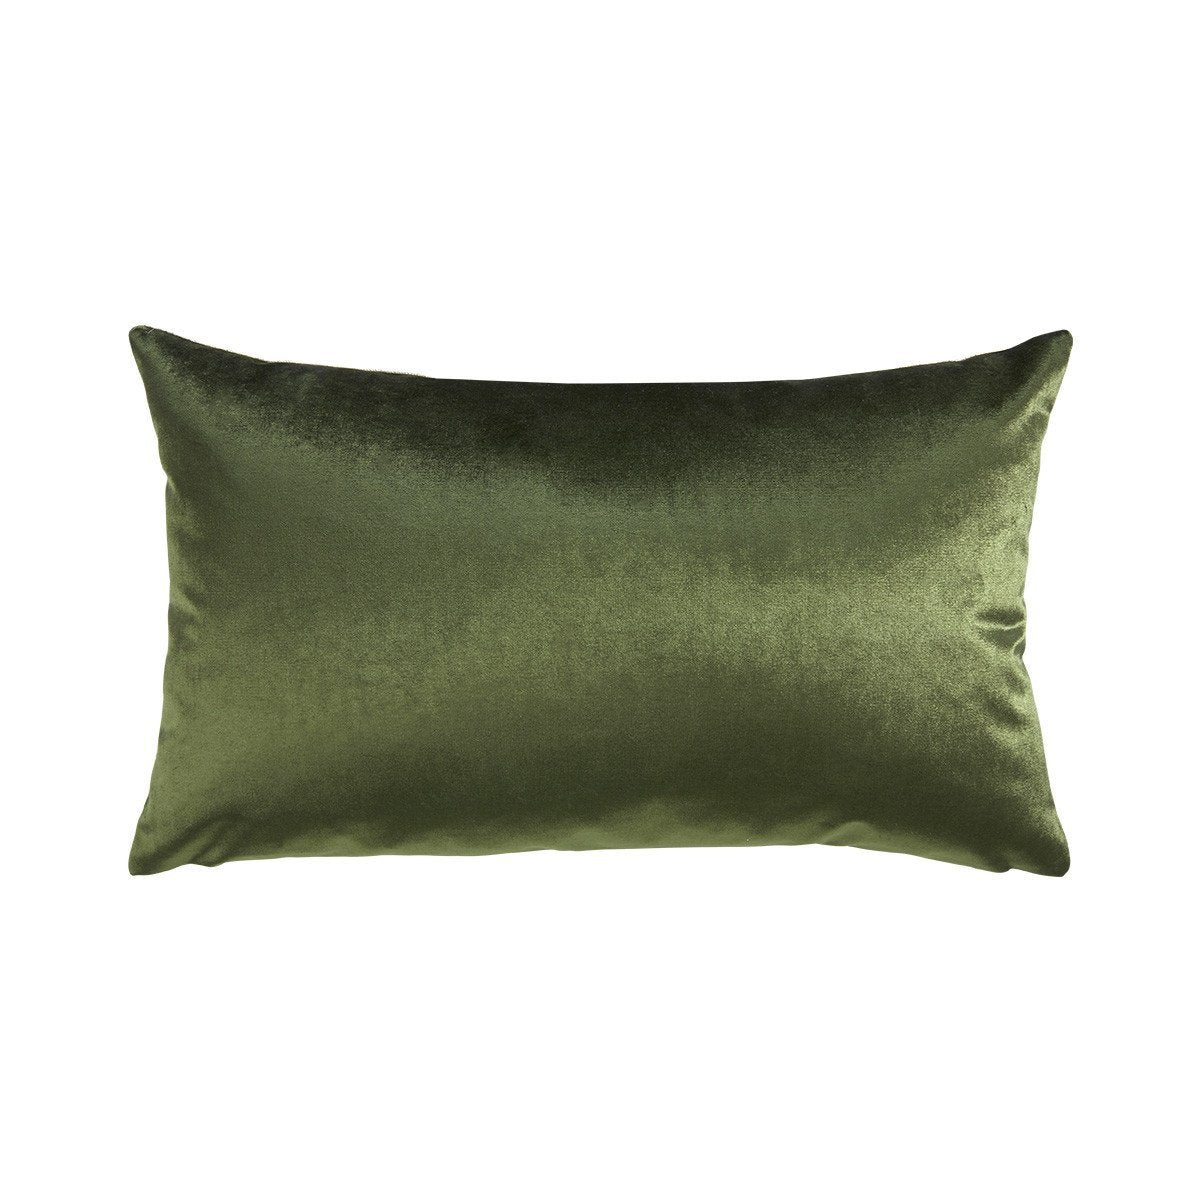 Berlingot Lumbar Decorative Throw Pillows by Iosis Fig Linens - Kaki Olive